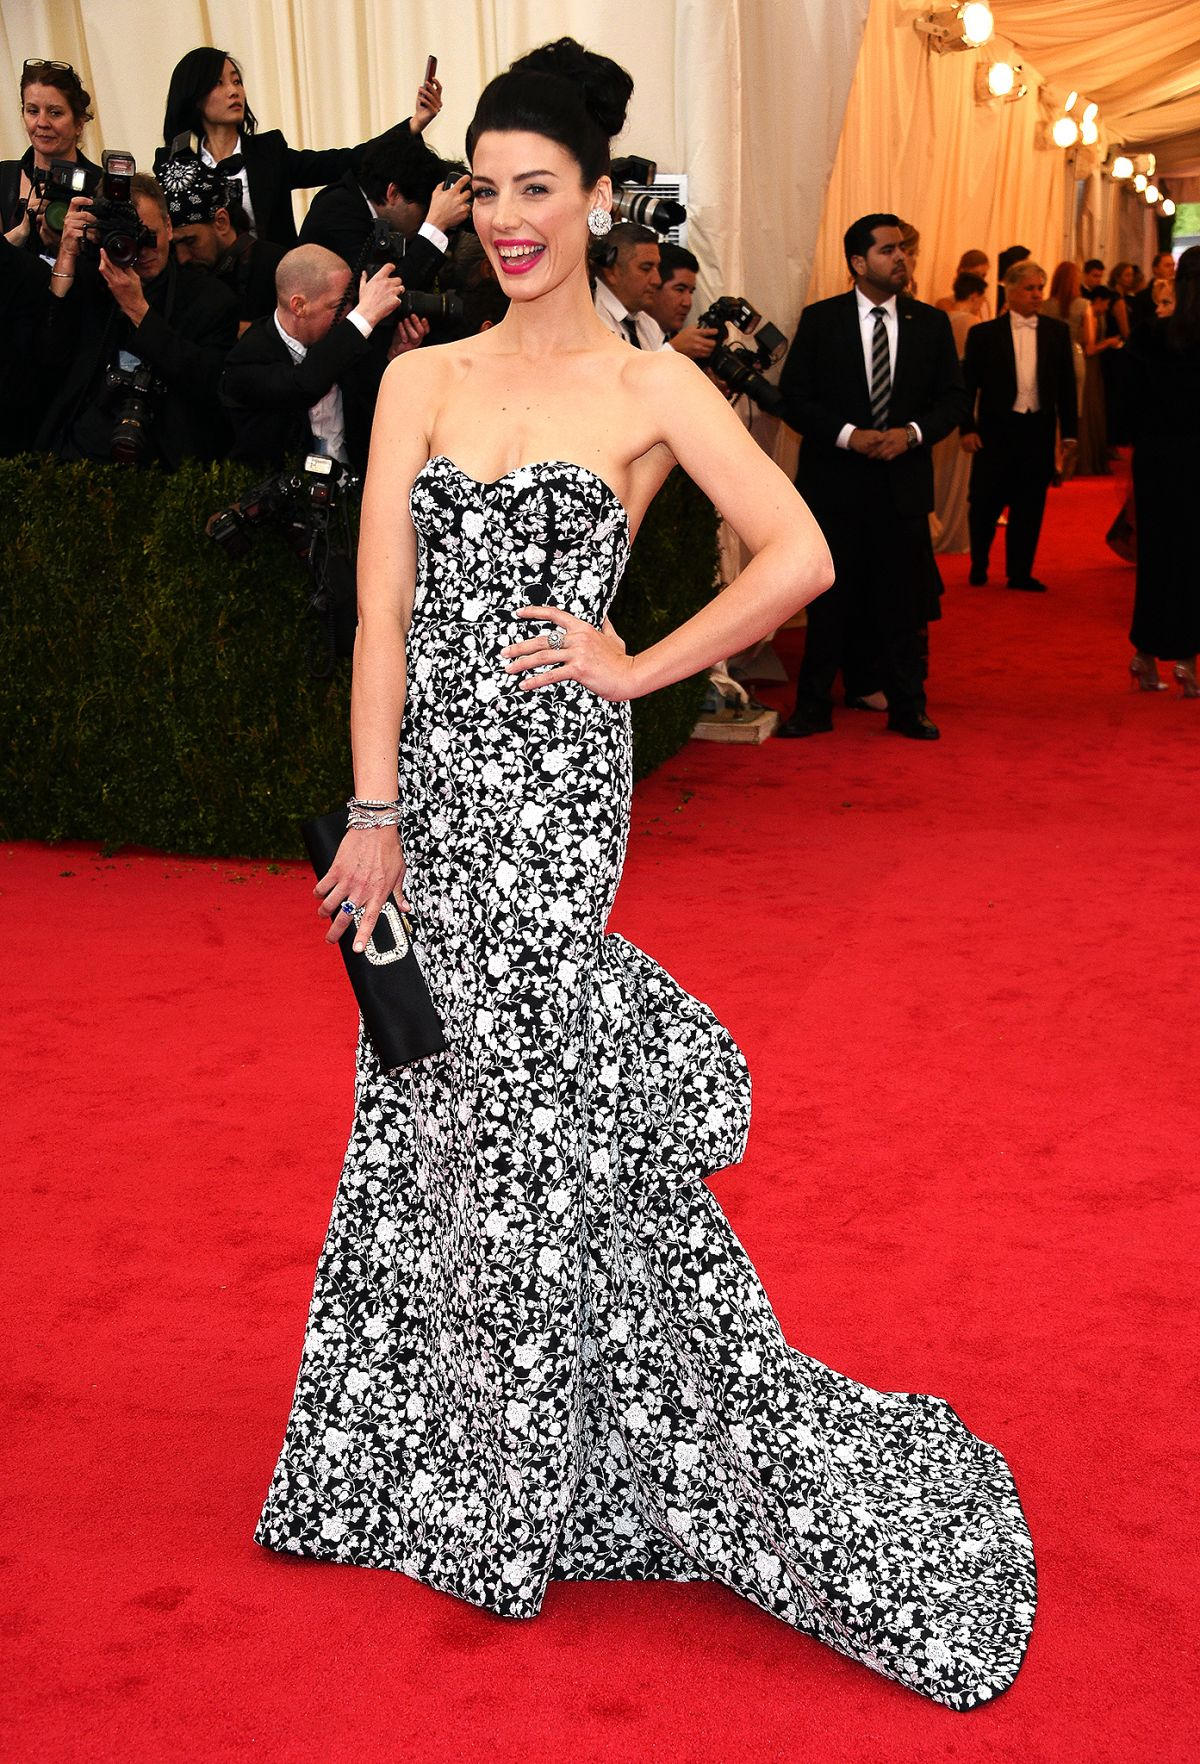 JESSICA PARE at MET Gala 2014 in New York